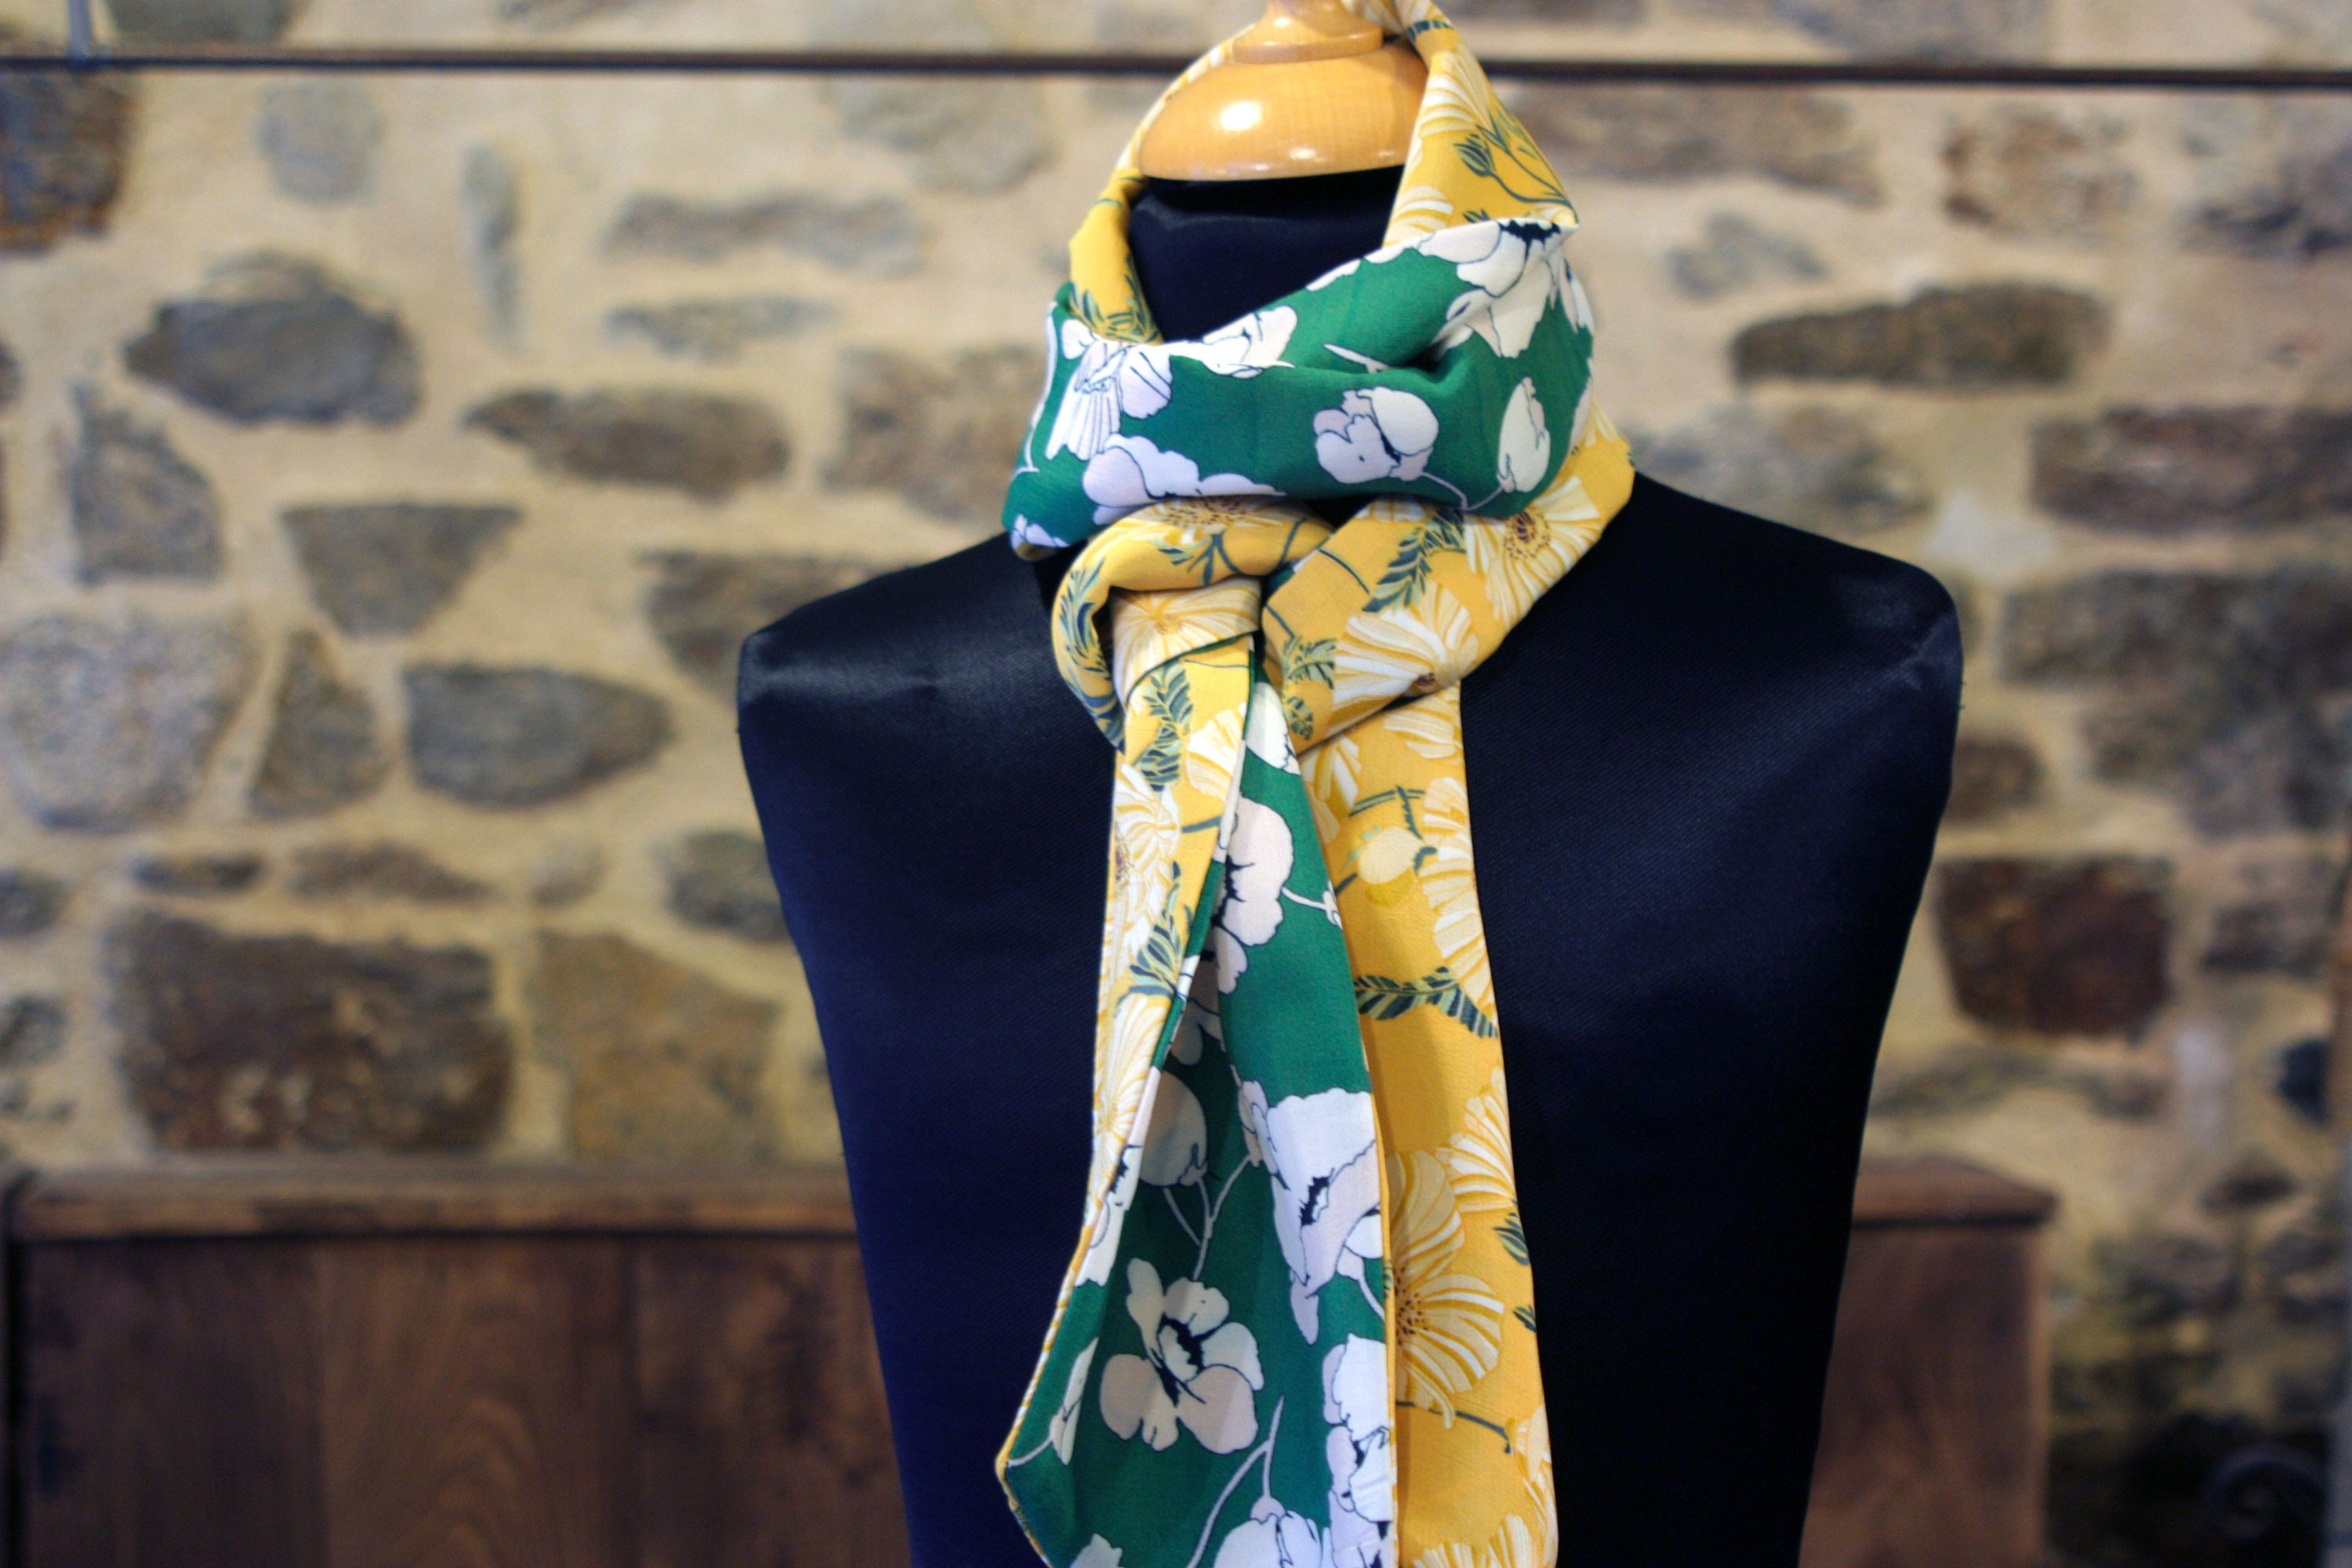 746de1c9d Women's scarf, Lavallière, two-tone yellow and green floral tie with white  cotton and viscose flowers. Wool Tartine.